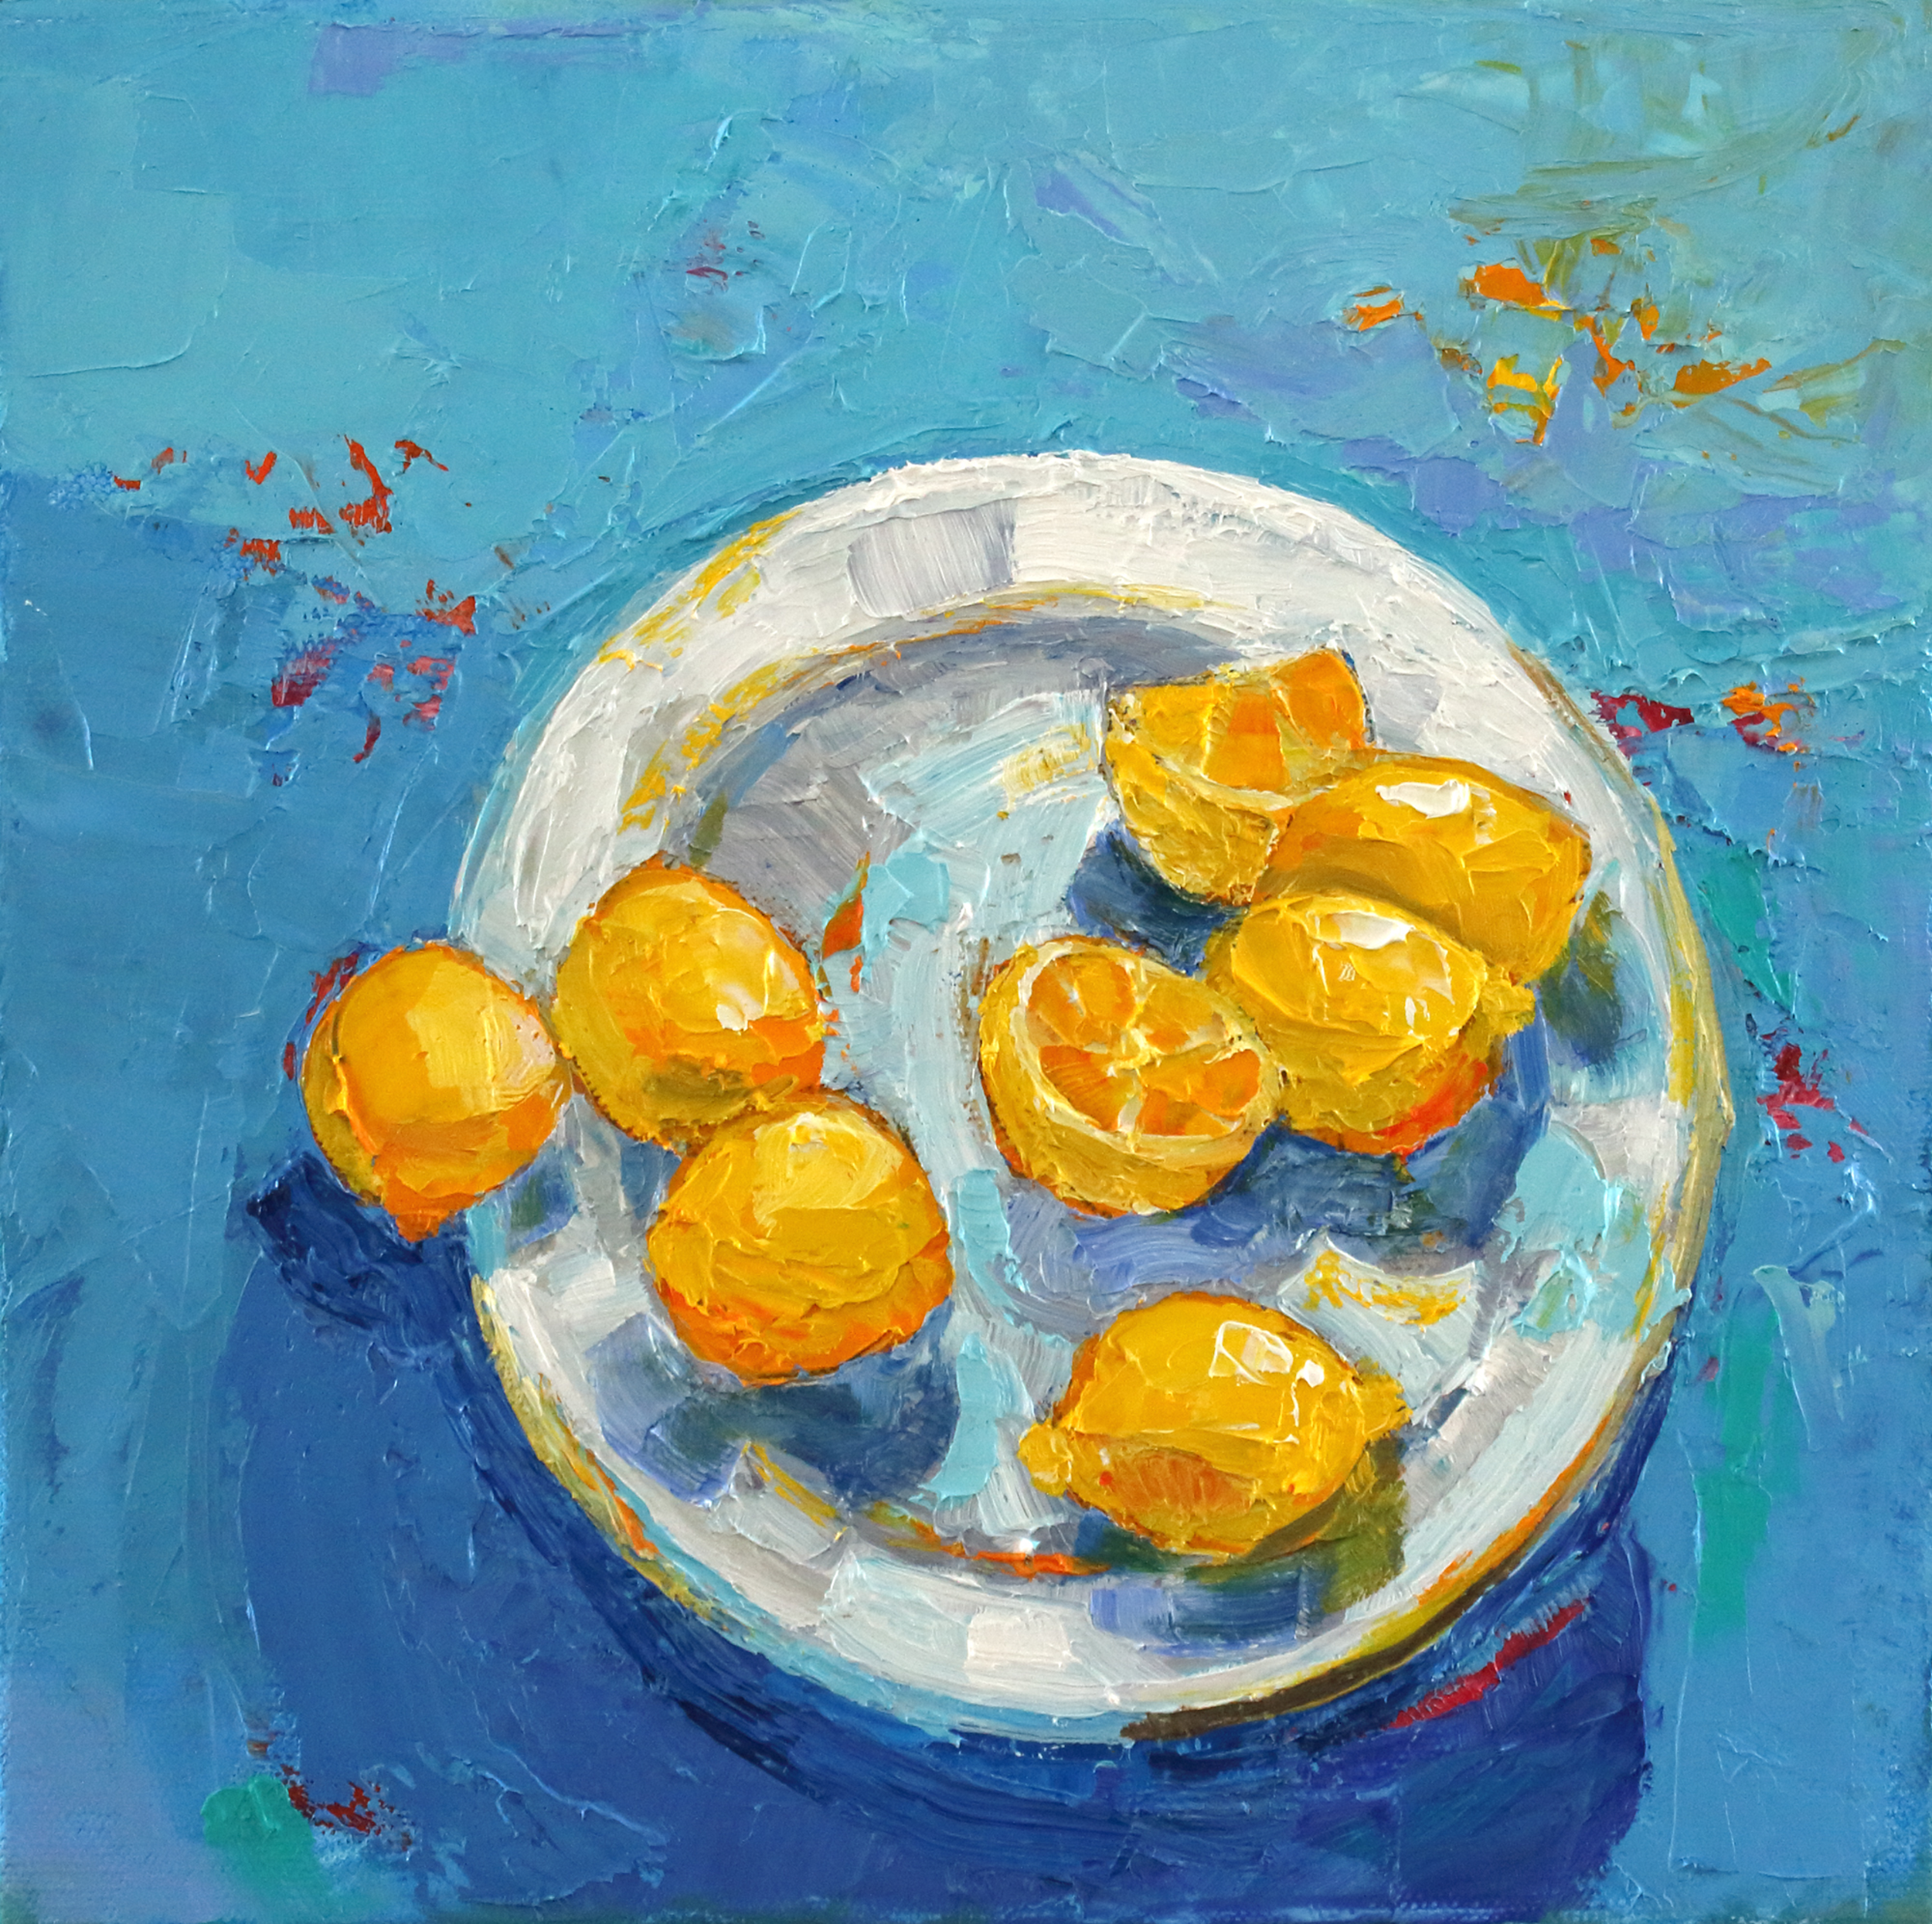 Title: Seven Lemons Size: 10 x 10 inches Medium: Oil on Canvas Price: £1350